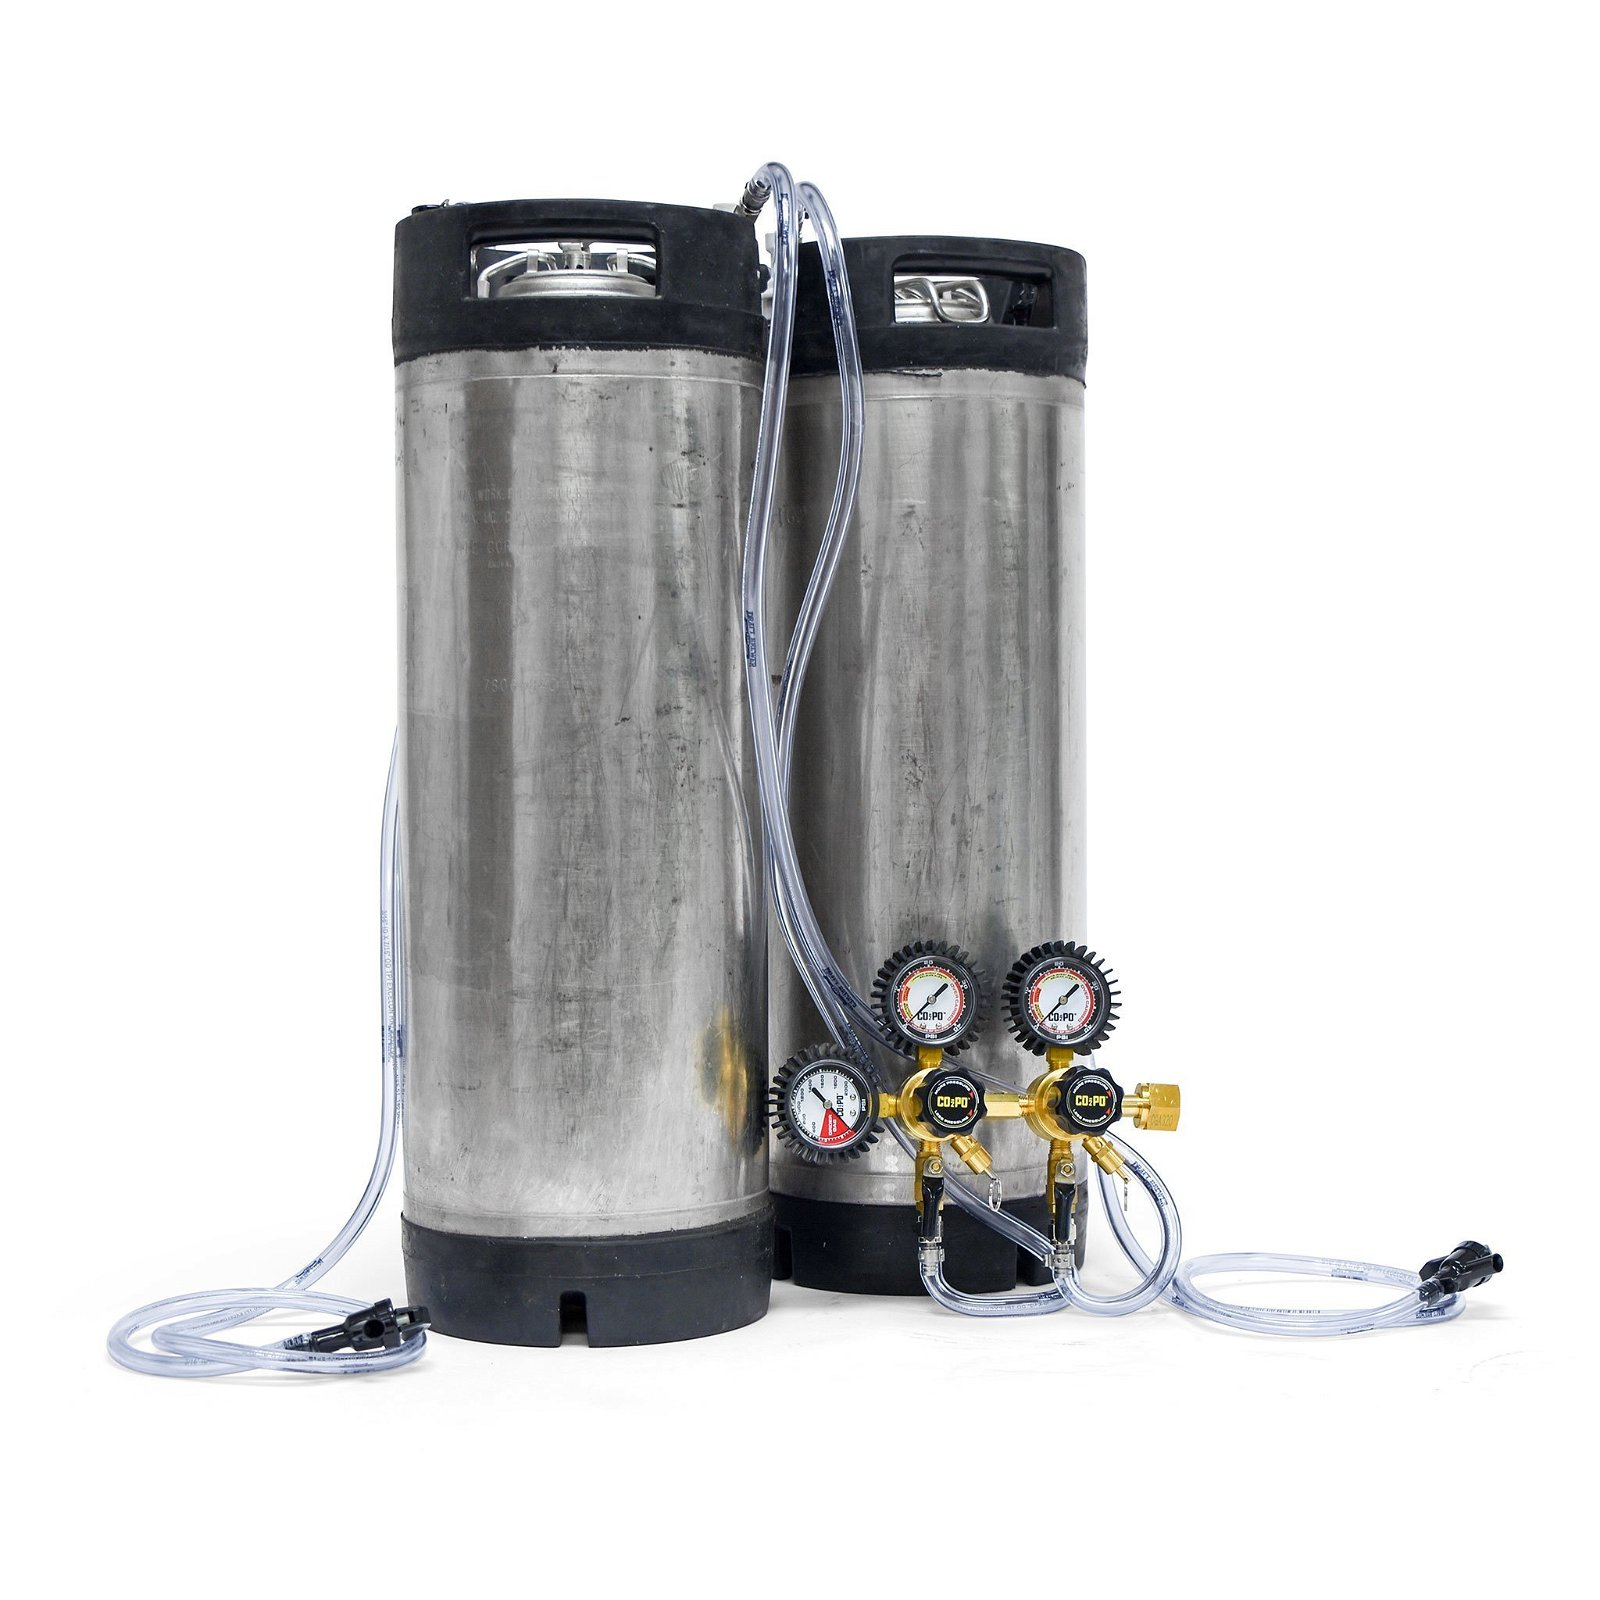 Keg System - Reconditioned Dual Ball Lock